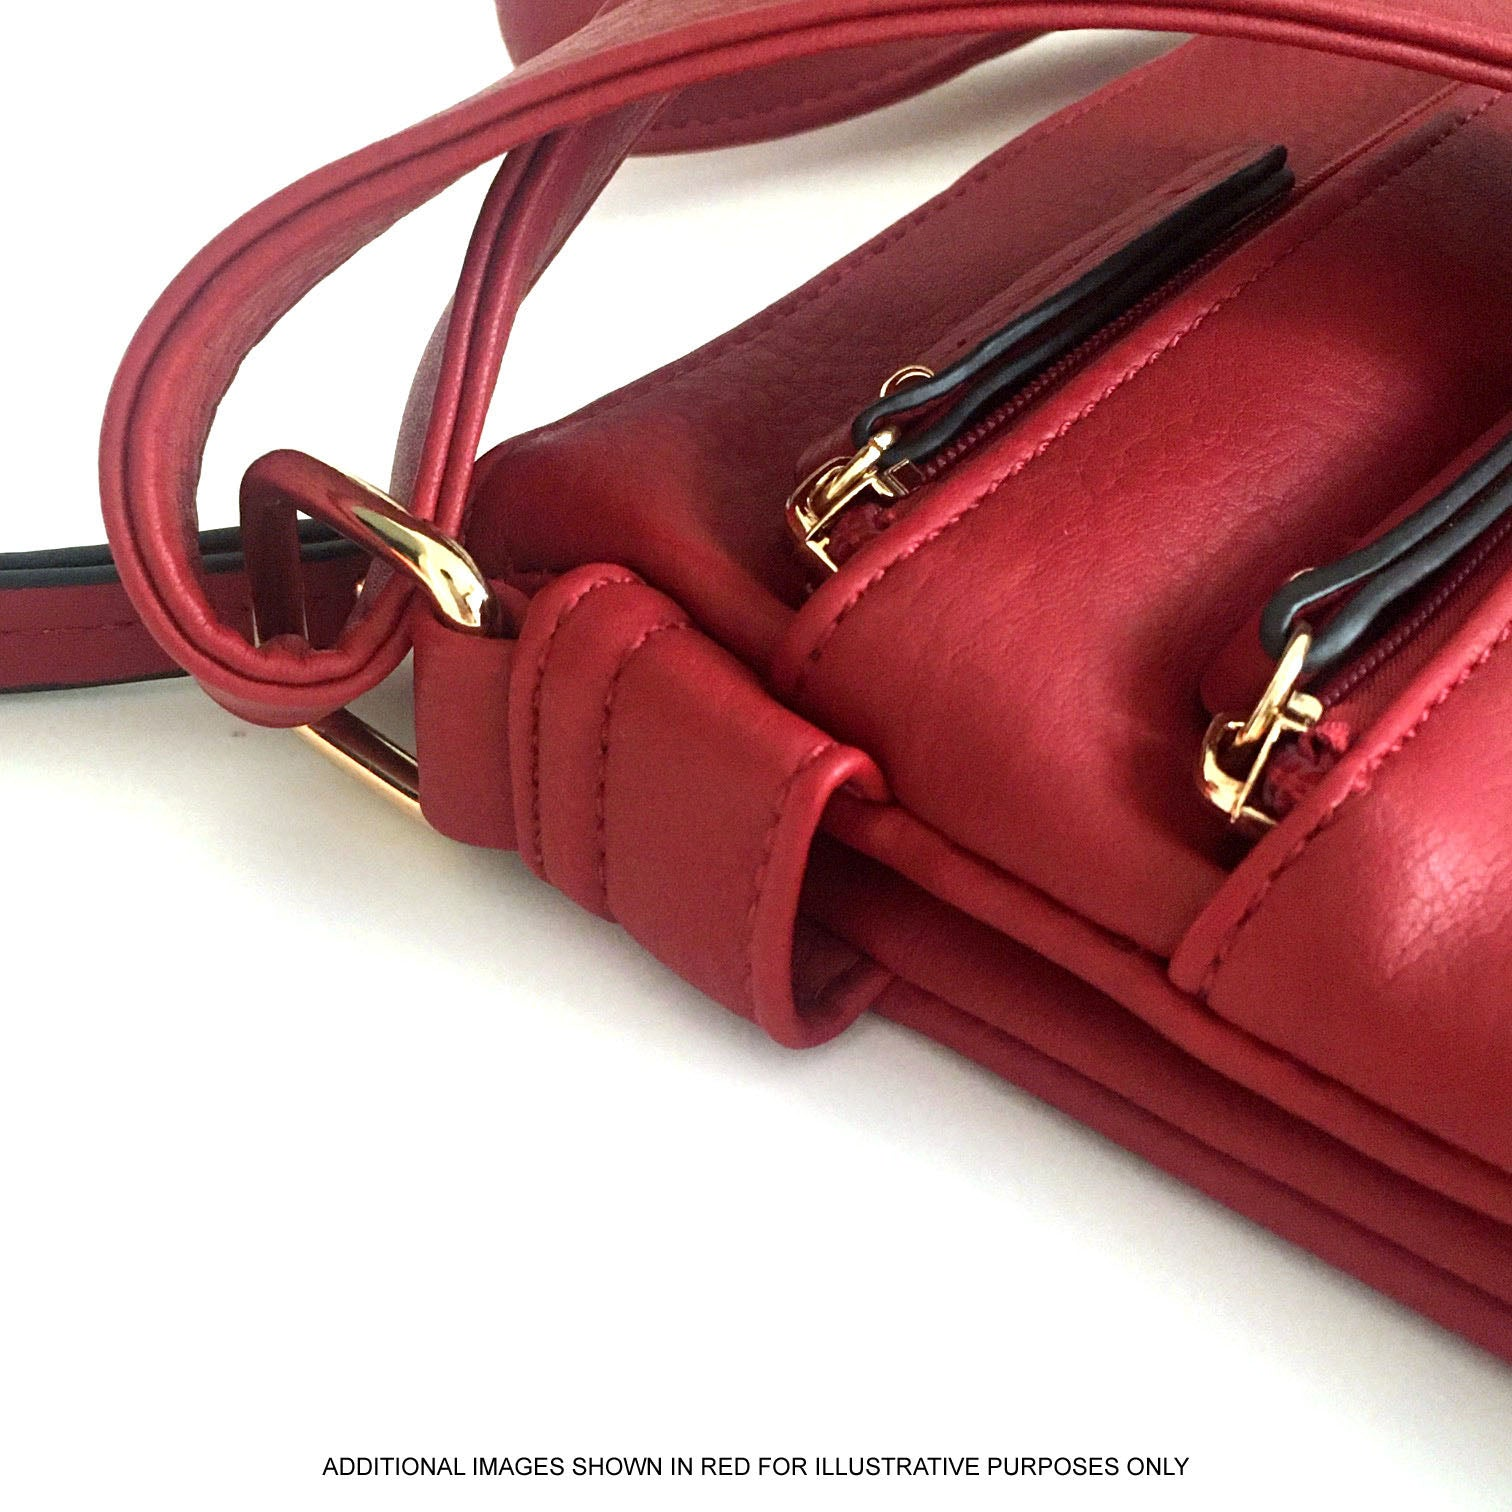 A-SHU PLAIN BURGUNDY MULTI COMPARTMENT CROSS BODY SHOULDER BAG - A-SHU.CO.UK